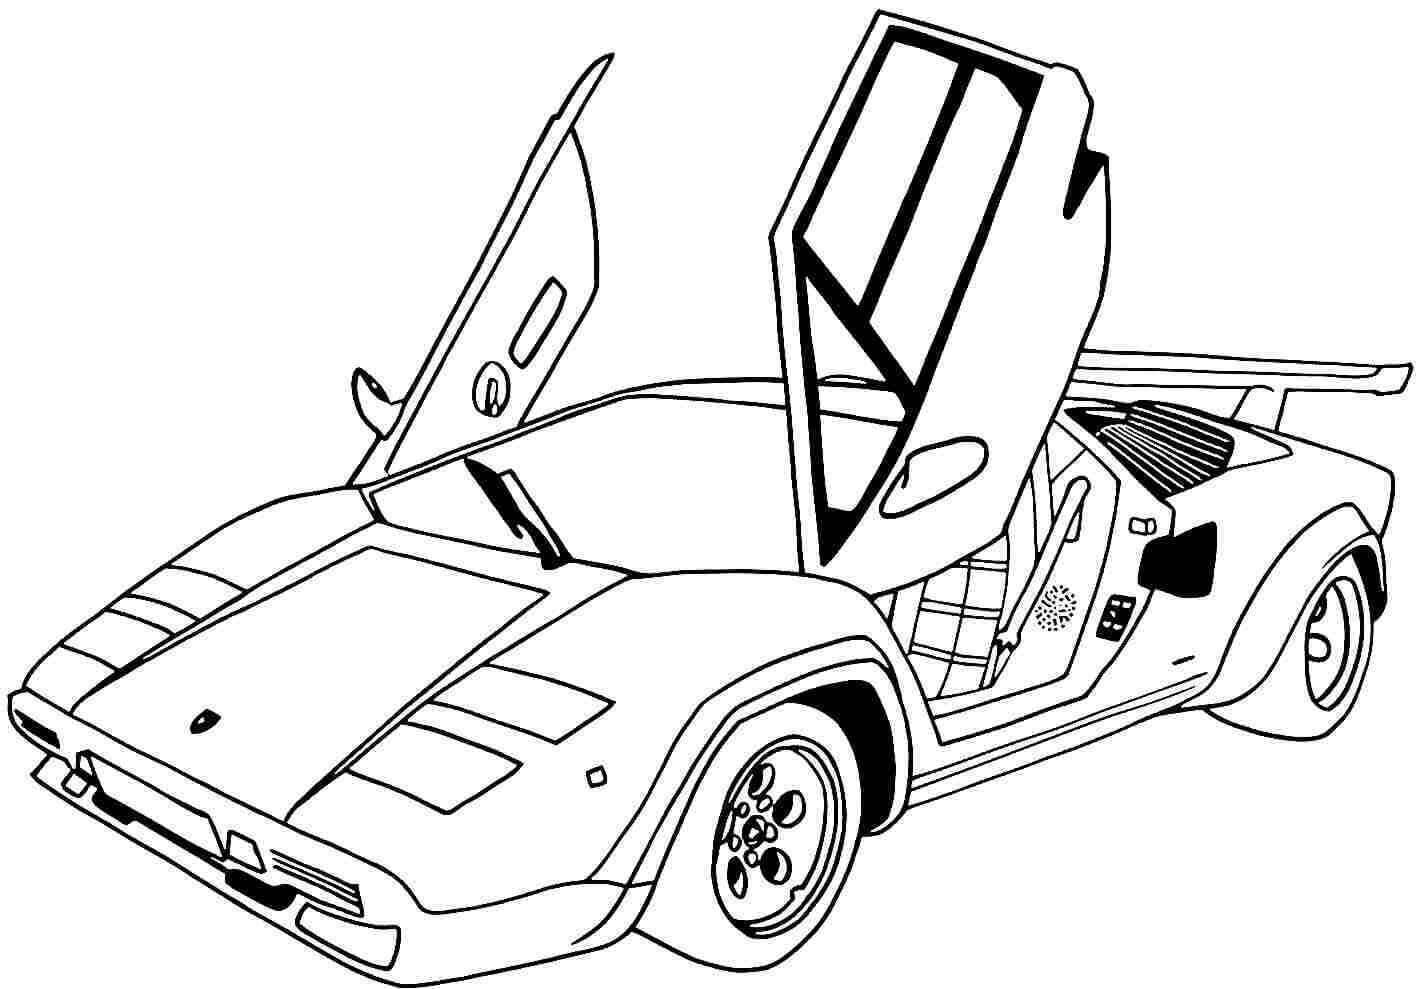 cars coloring pages free printable coloring and drawing super car dodge eazor coloring page pages cars printable free coloring